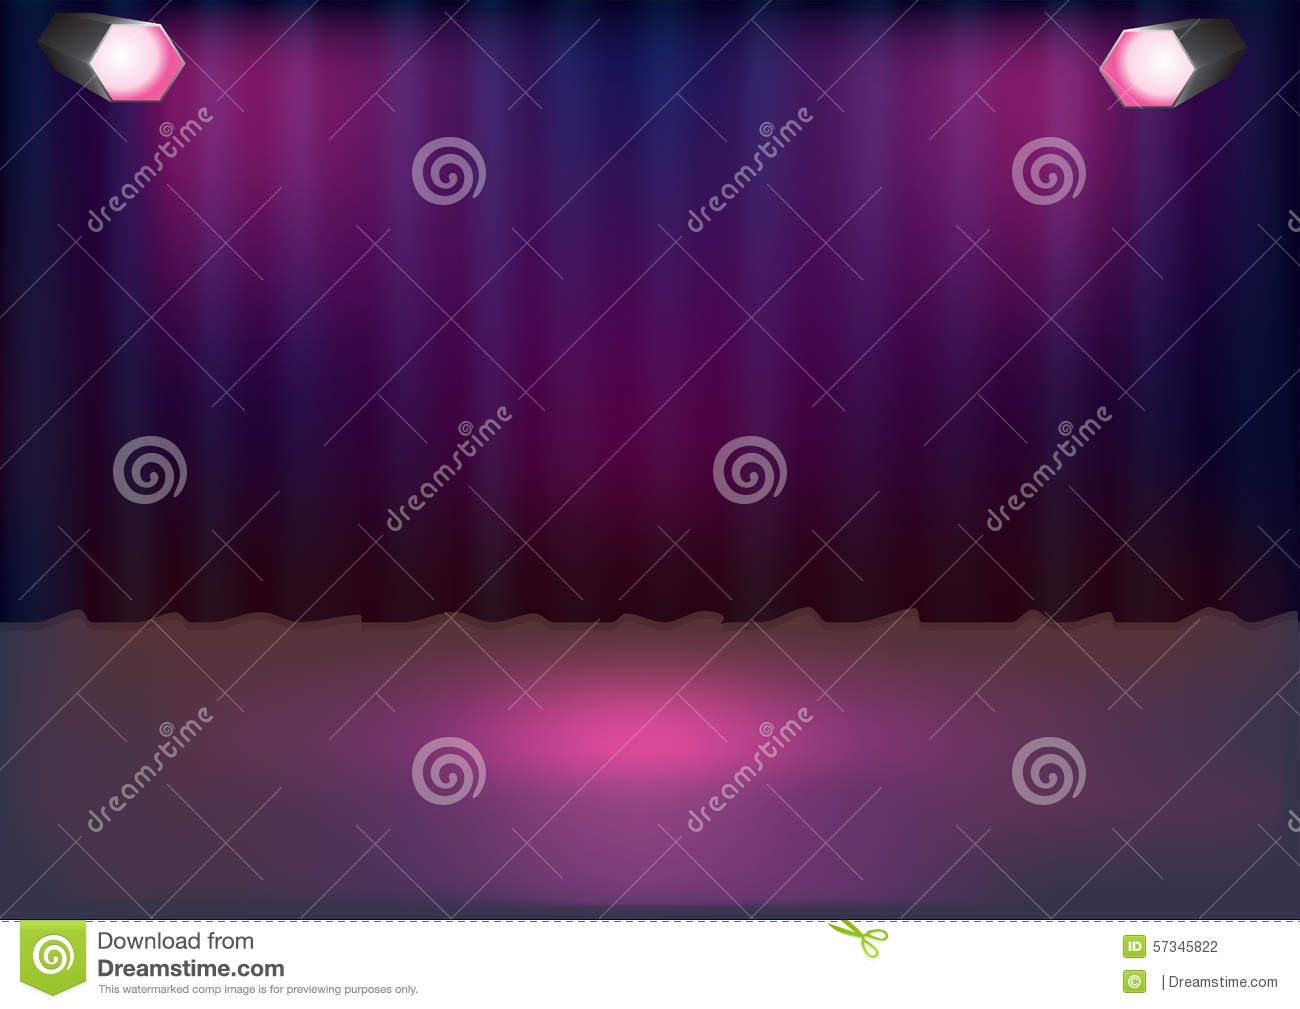 Bl blue stage curtains background - Purple Stage Curtains Background Blue Curtain Background And Stage With Sport Lights Stock Photography